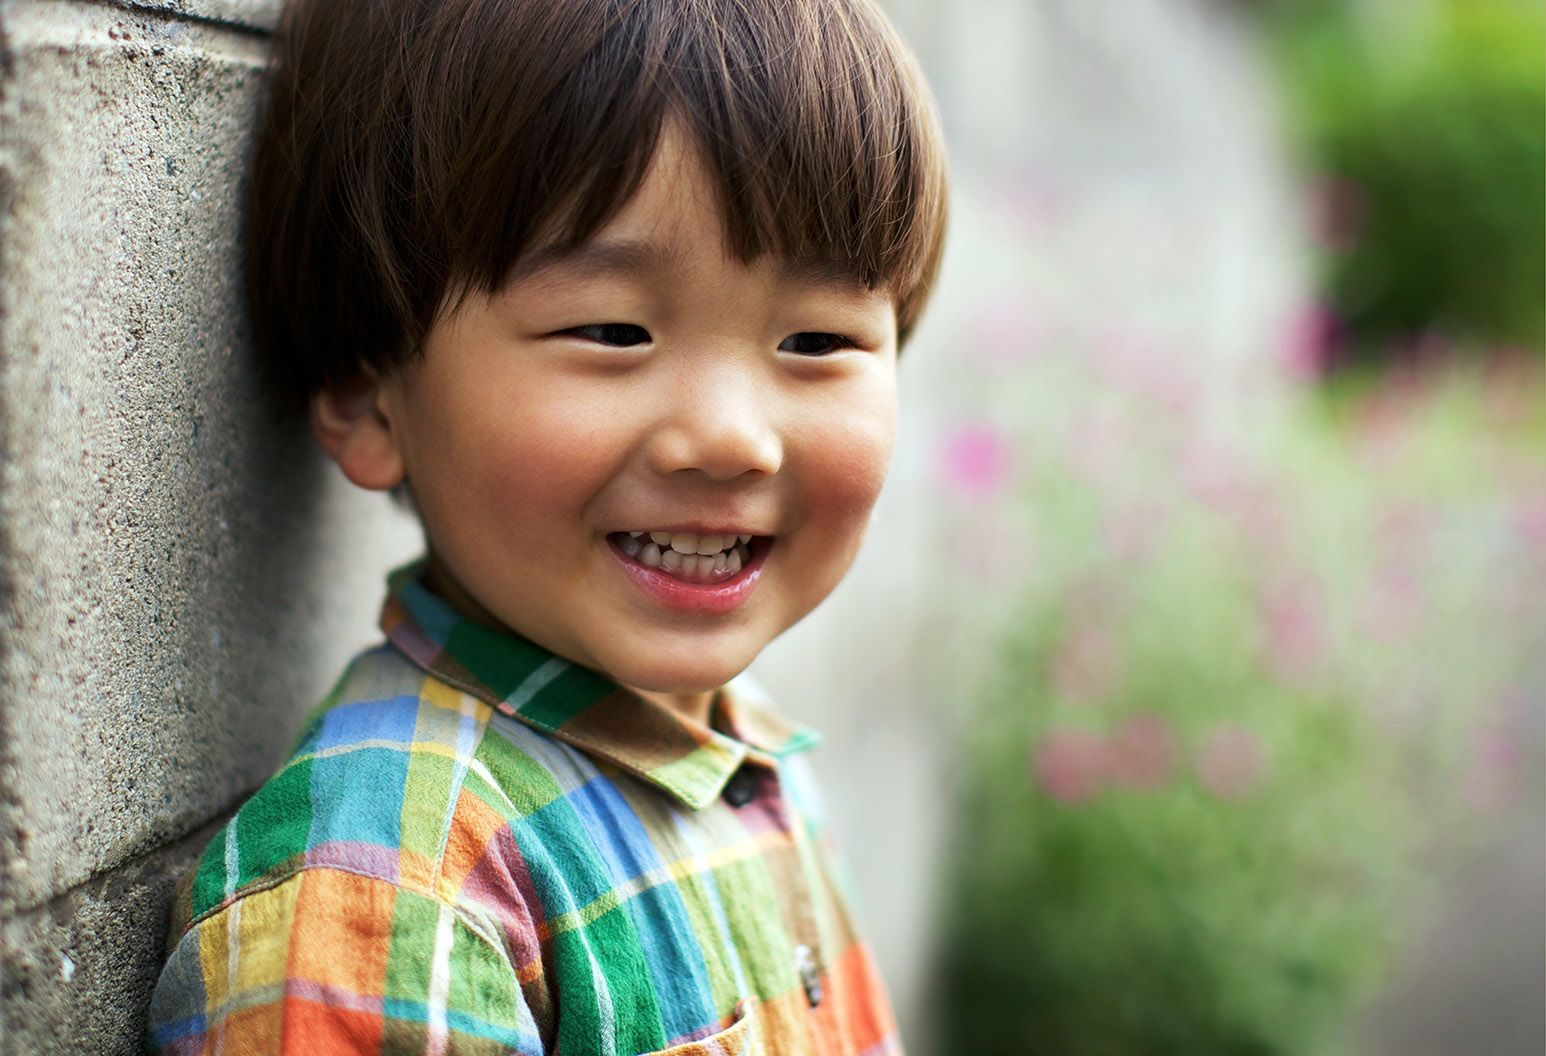 A toddler boy wearing a multicolored plaid shirt stands against a concrete wall outside and smiles.